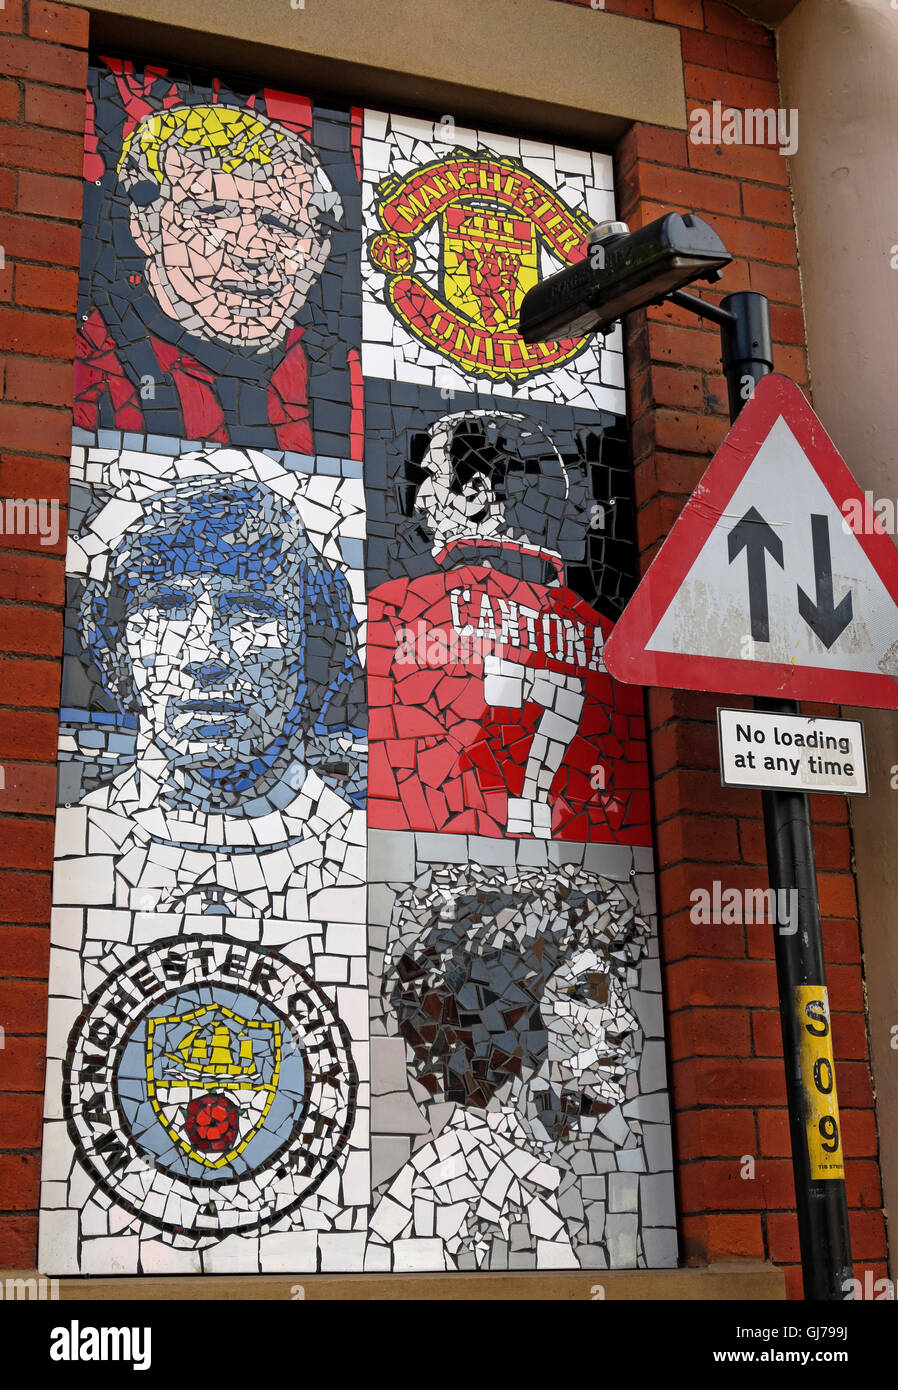 Afflecks,Palace,Manchester,Northern,Quarter,Oldham,St,Street,Market,Dept,Mark,Kennedy,art,hero,heroes,Mosaic,Mosaics,art,MUFC,MCFC,Cantona,city,soccer,Manc,Afflecks Palace Manchester,Northern Quarter,Mark Kennedy,Manchester Hero,Manchester Heroes,Manchester City,GoTonySmith,@HotpixUK,HotpixUK,United,Kingdom,GB,English,British,Afflecks,Palace,store,on,Oldham,Street,market,shops,stalls,Tib,Dale,department,tourist,attraction,retail,cool,Madchester,Church,boutiques,building,victorian,no,loading,sign,city,centre,Buy Pictures of,Buy Images Of,Images of,Stock Images,United Kingdom,Great Britain,Afflecks Palace,Affleck & Browns,Tib St,Church St,independent stalls,small shops